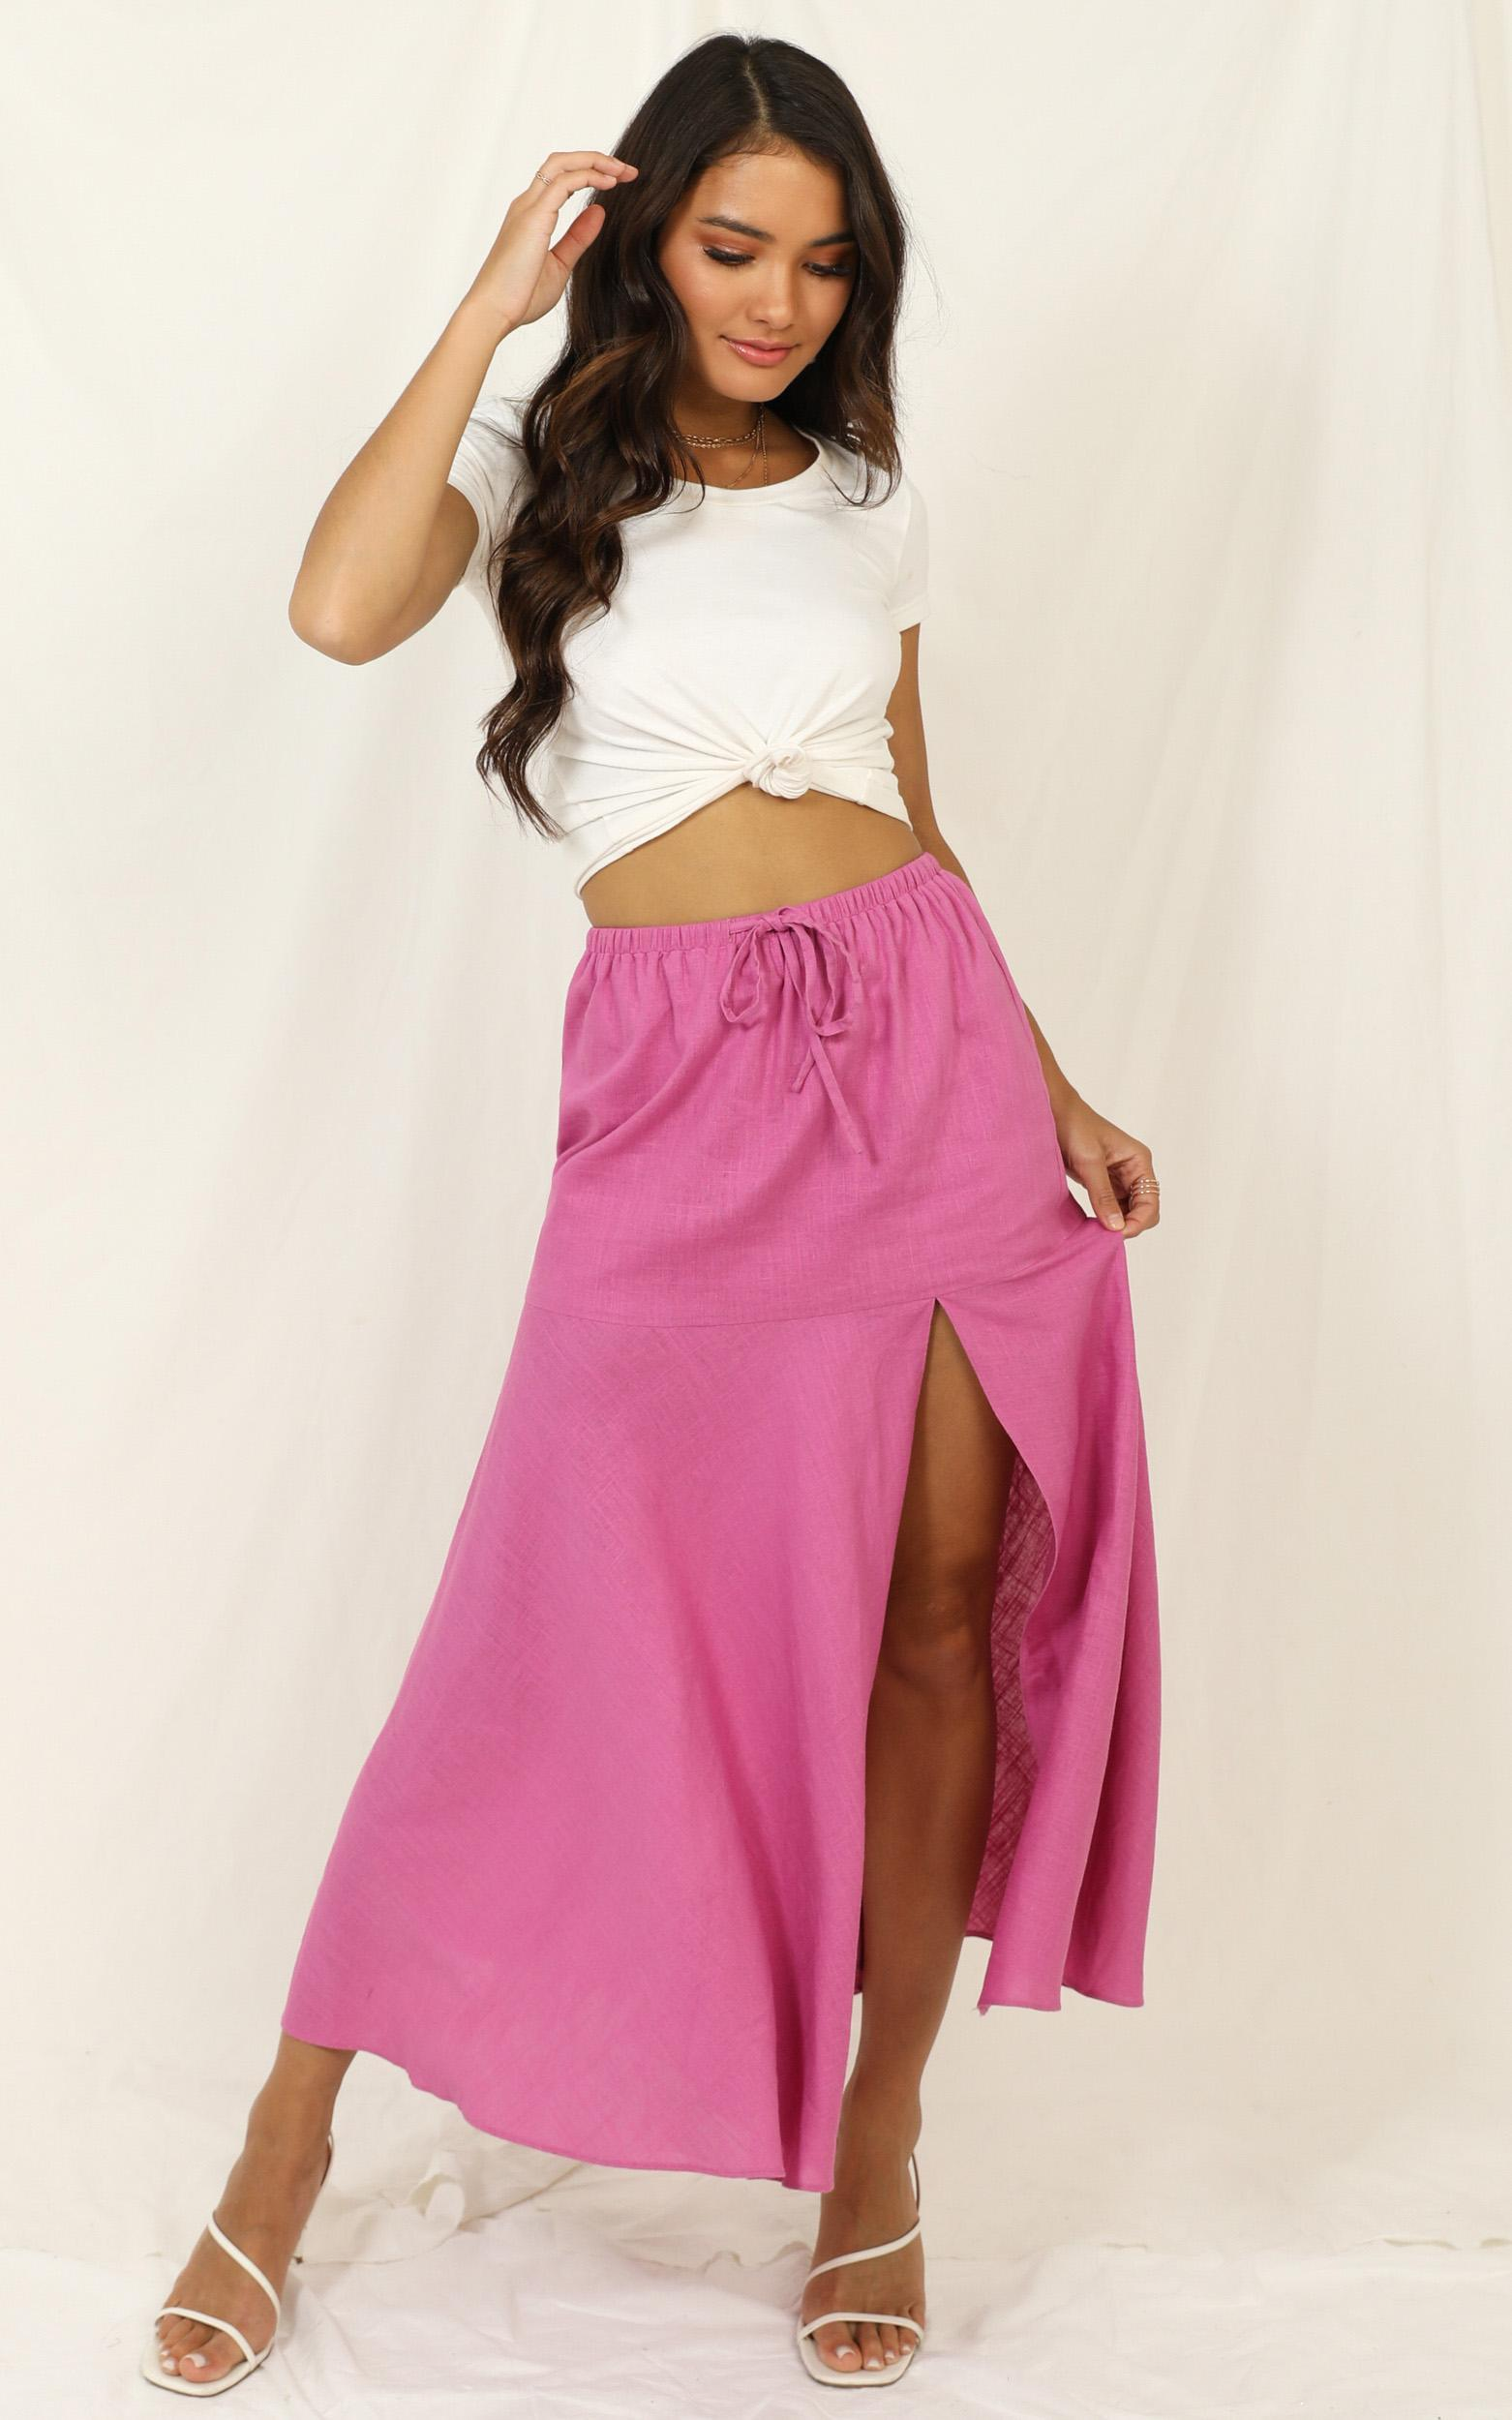 Break The Habit skirt in pink - 14 (XL), Pink, hi-res image number null